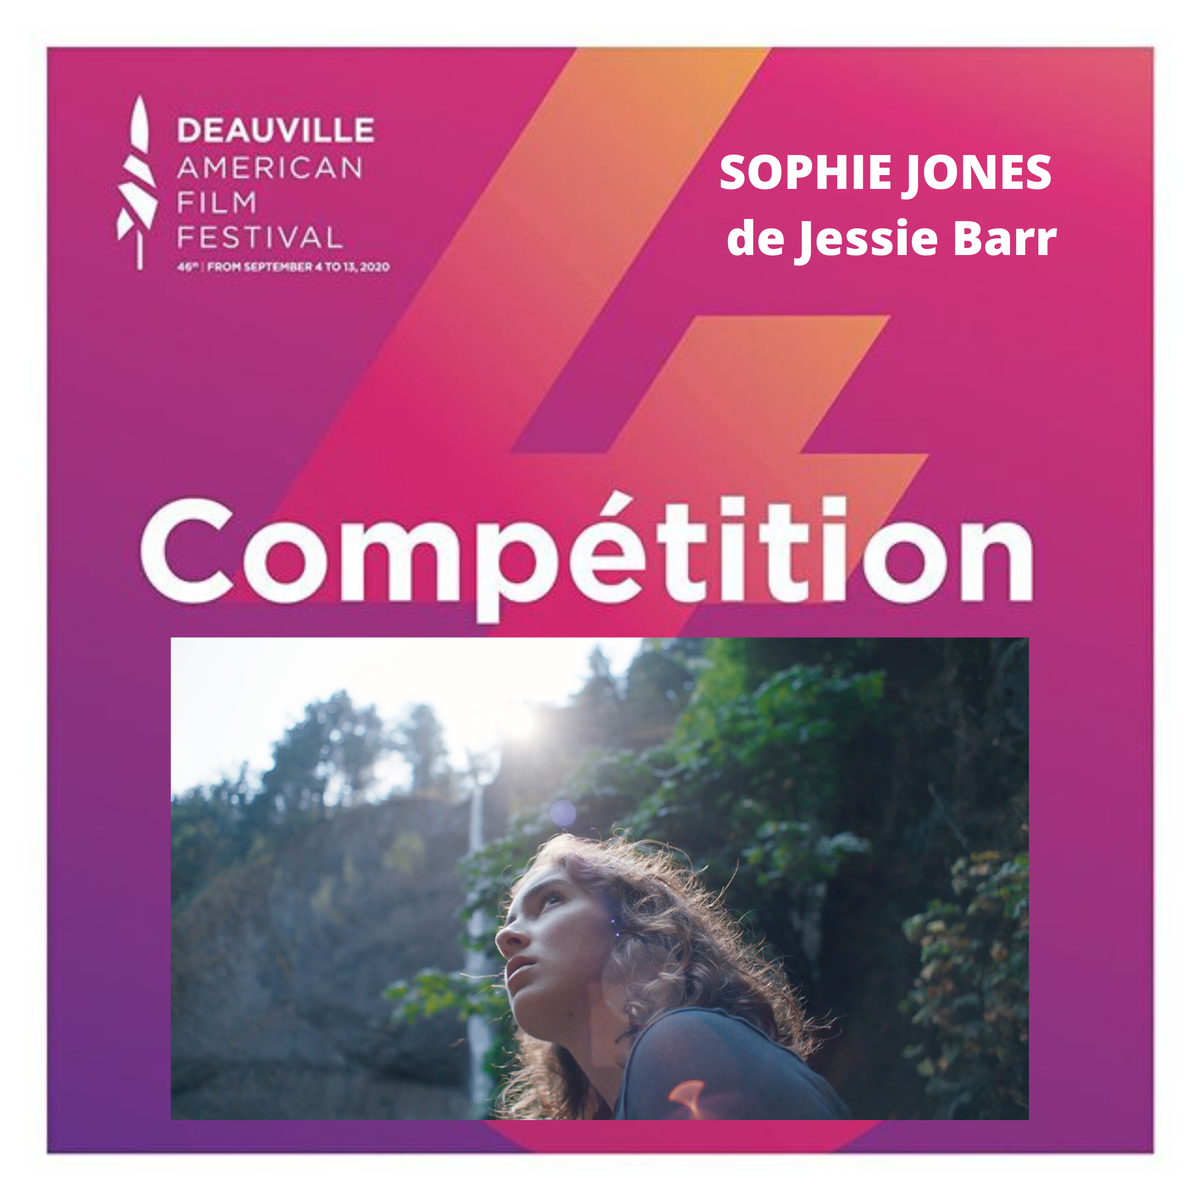 Congrats to #FilmFatales member Jessie Barr, whose feature debut, SOPHIE JONES, will have its world premiere at the 2020 Deauville American Film Festival next month!  @BarrJessie @SophieJmovie @DeauvilleUS #Deauville2020 #JessieBarr #SophieJonesMovie #FestivalDeDeauvillepic.twitter.com/TbEgm04RlH